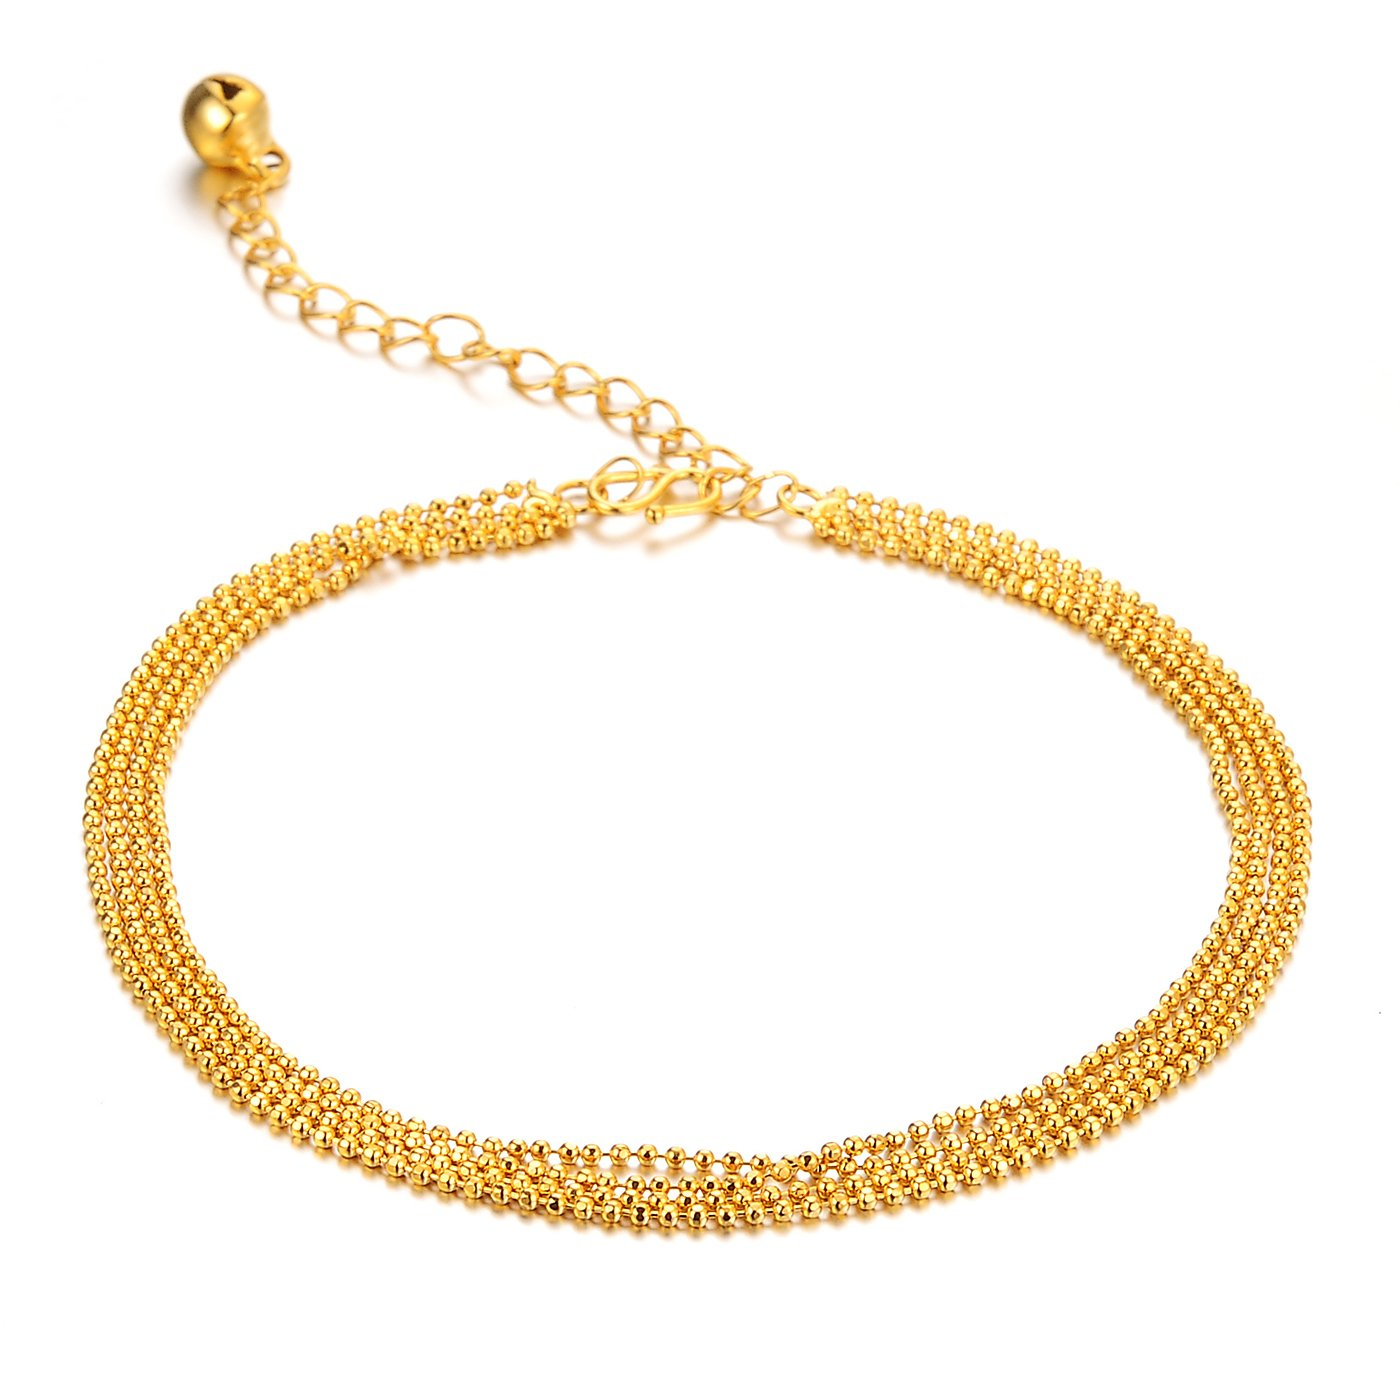 Fate Love Multilayer Bead Foot Chain Bracelet 18k Gold Plated Anklet Women Jewelry,Adjustable